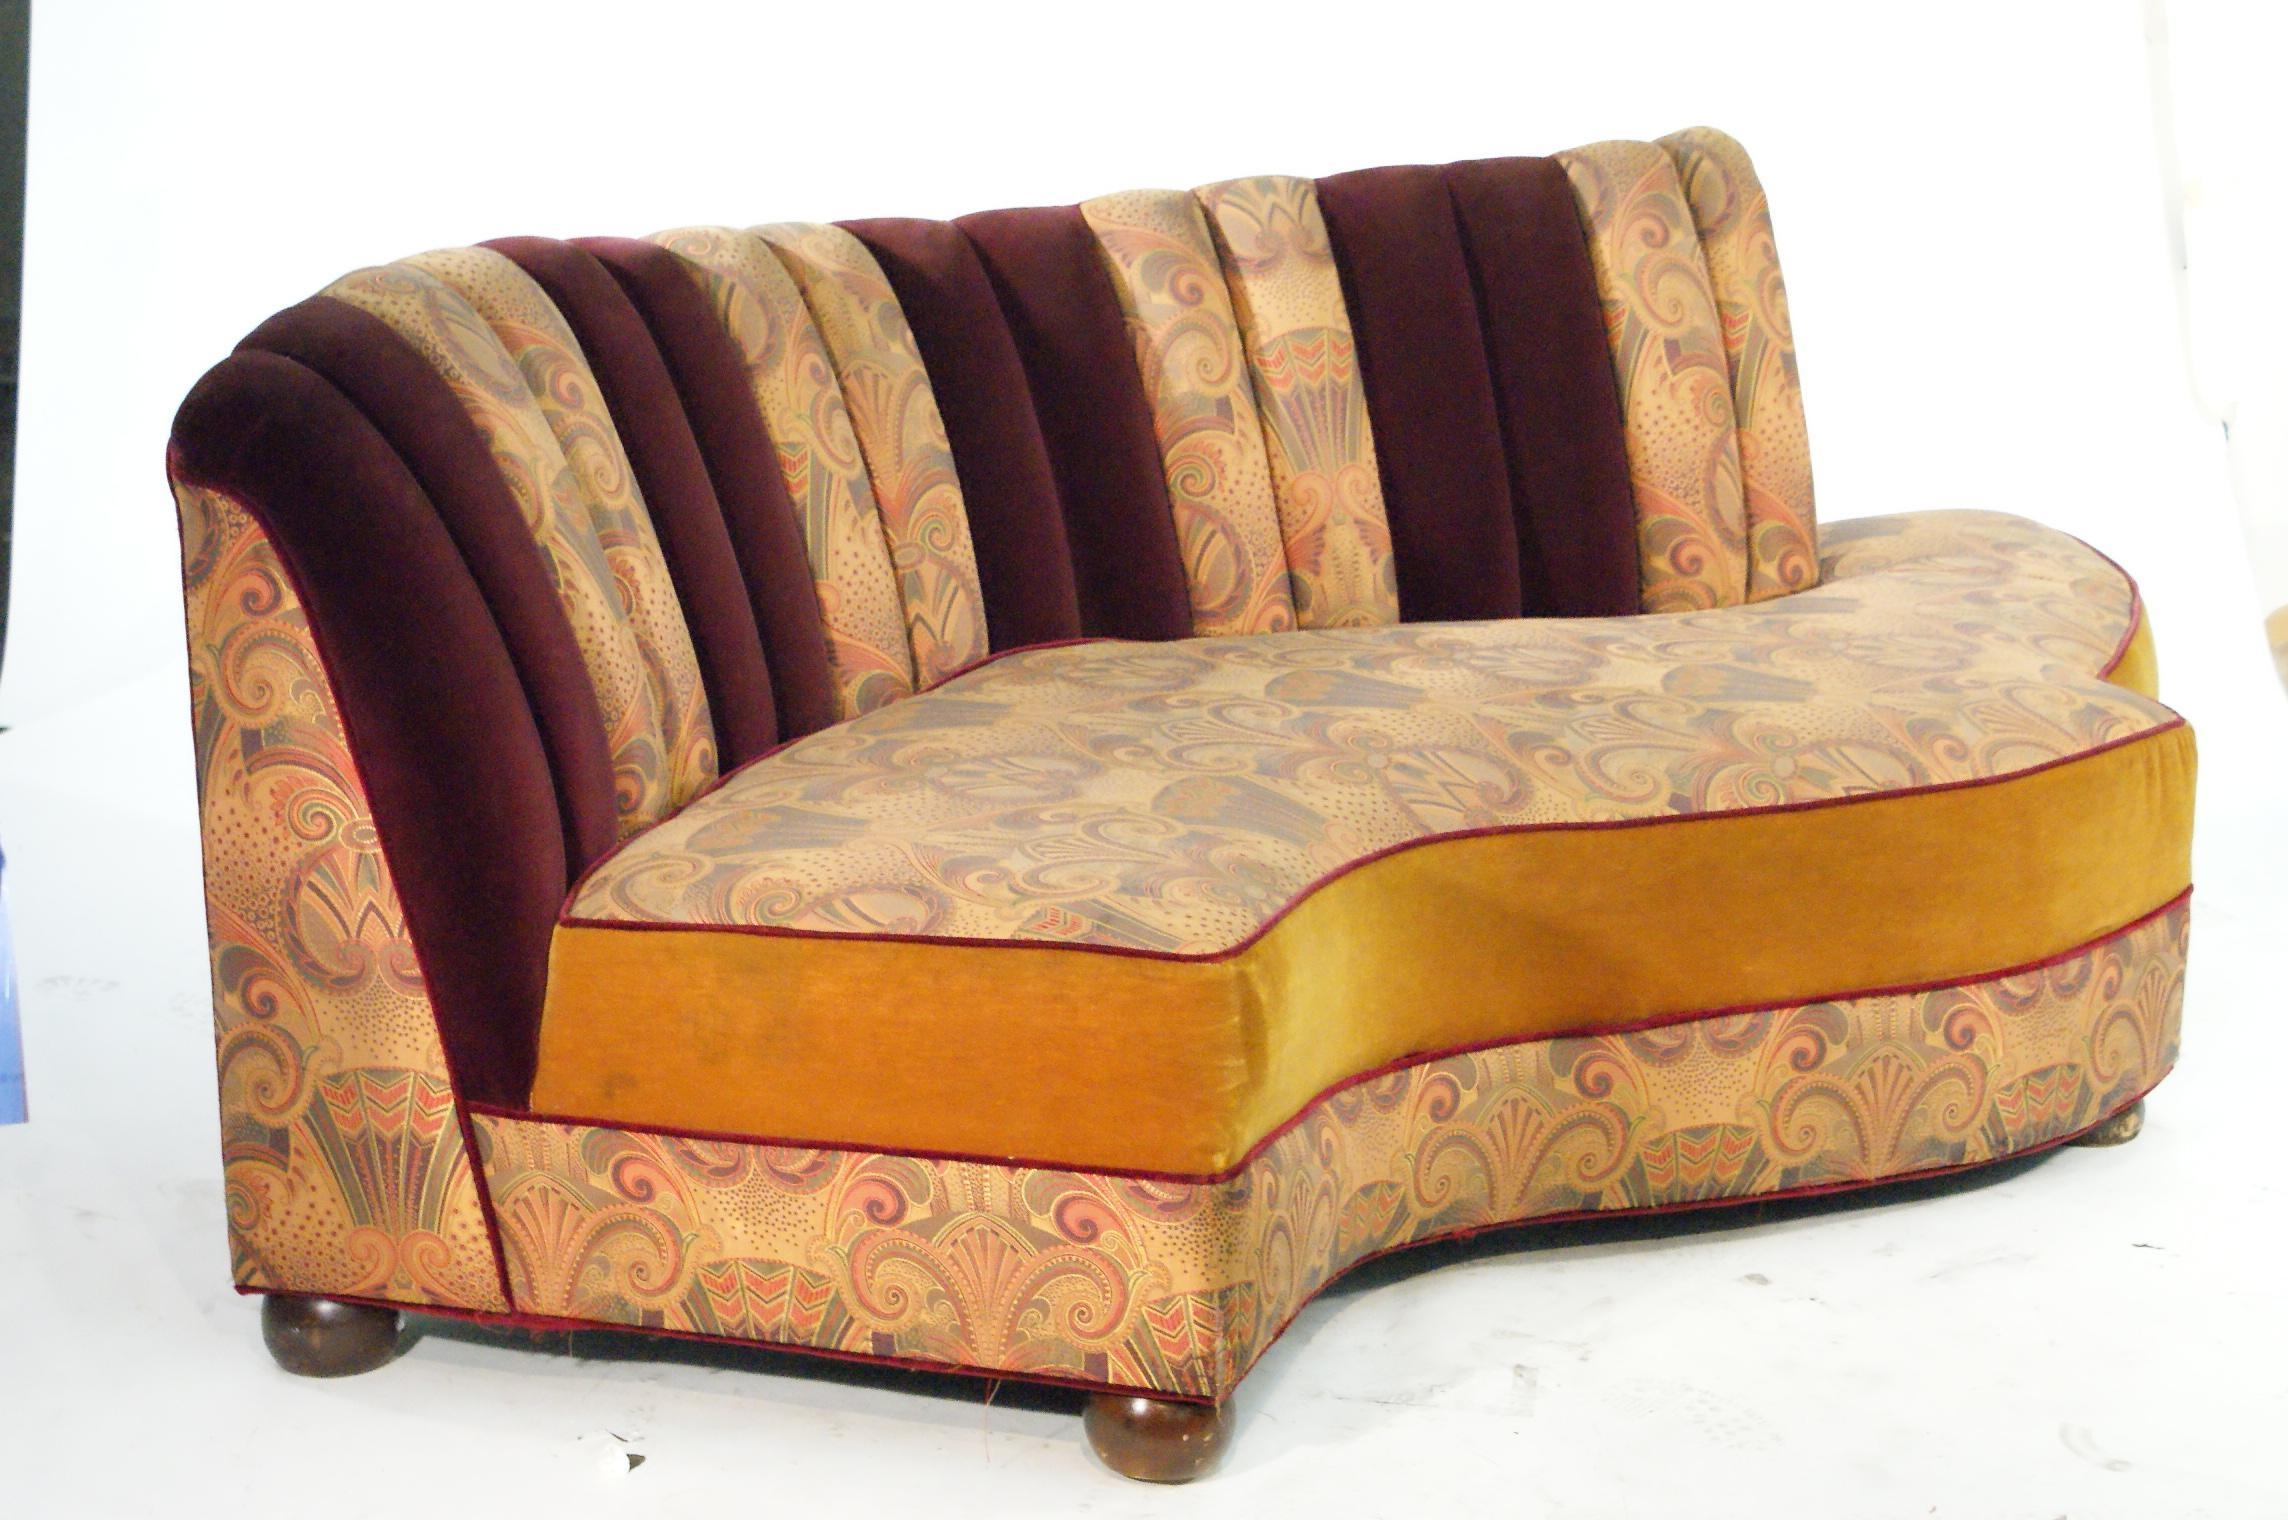 Art Deco Furniture Style With Regard To Art Deco Sofa And Chairs (View 7 of 20)